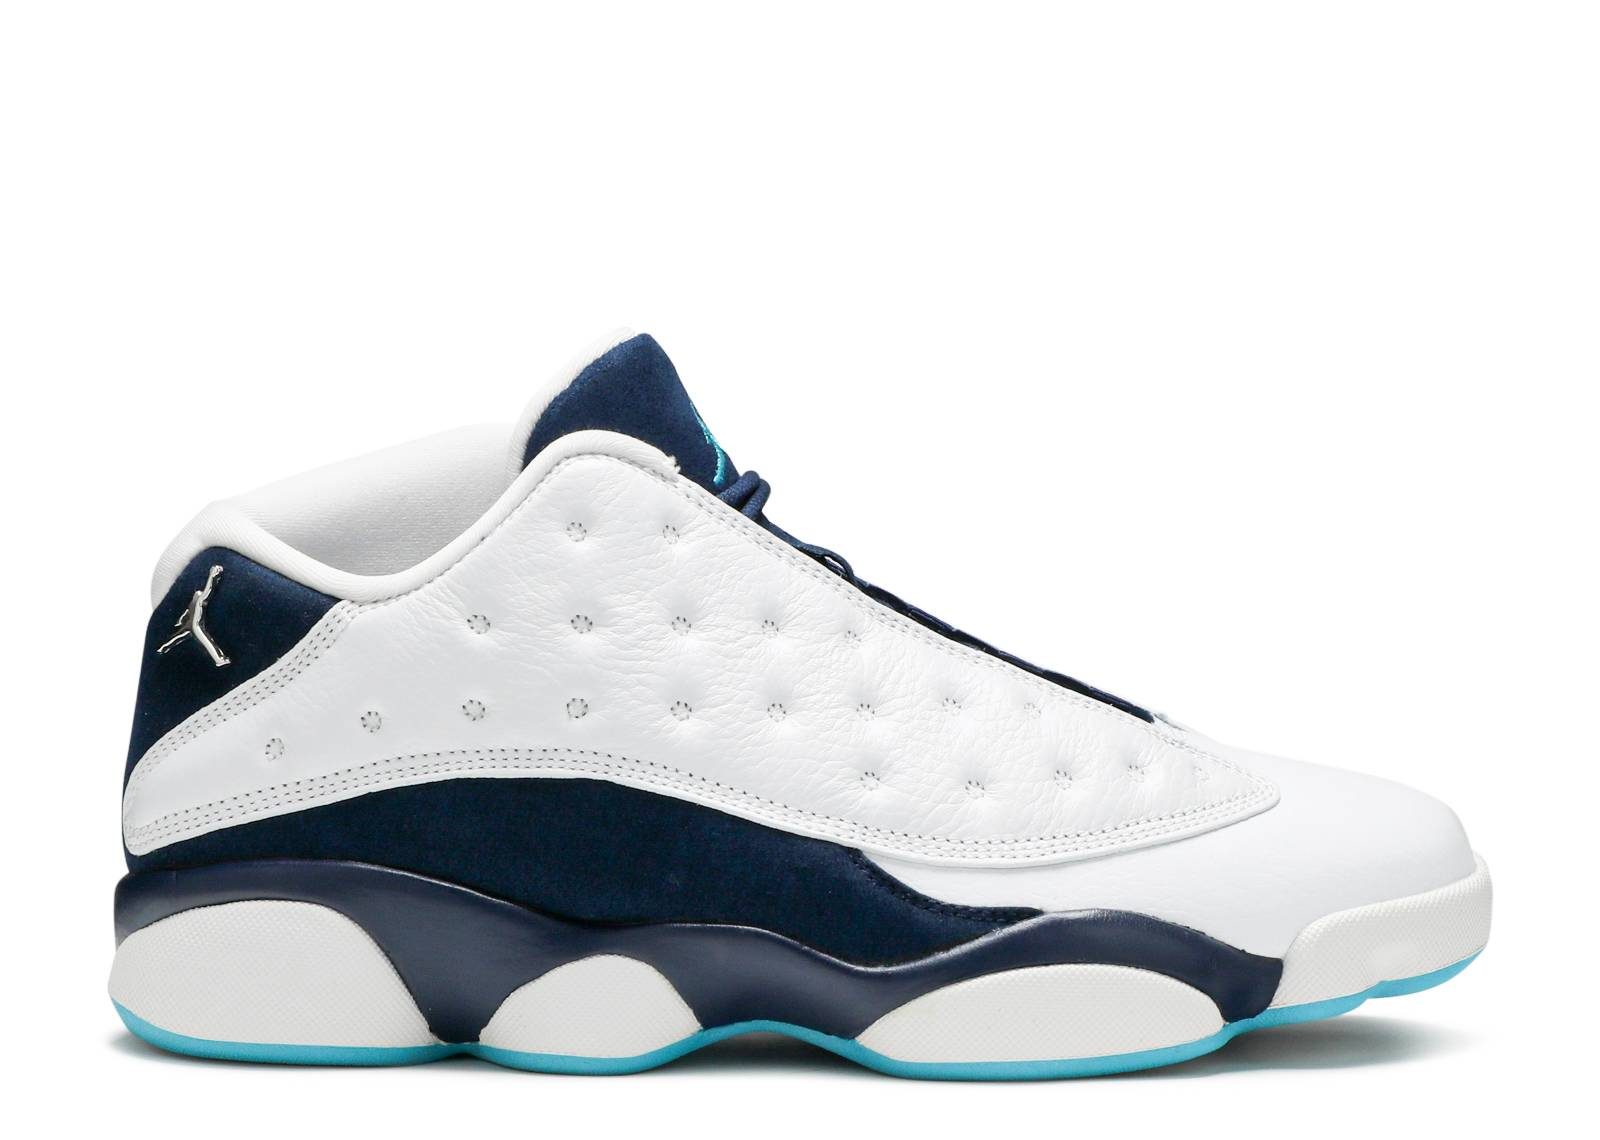 3c14610af83 Air Jordan 13 Retro Low